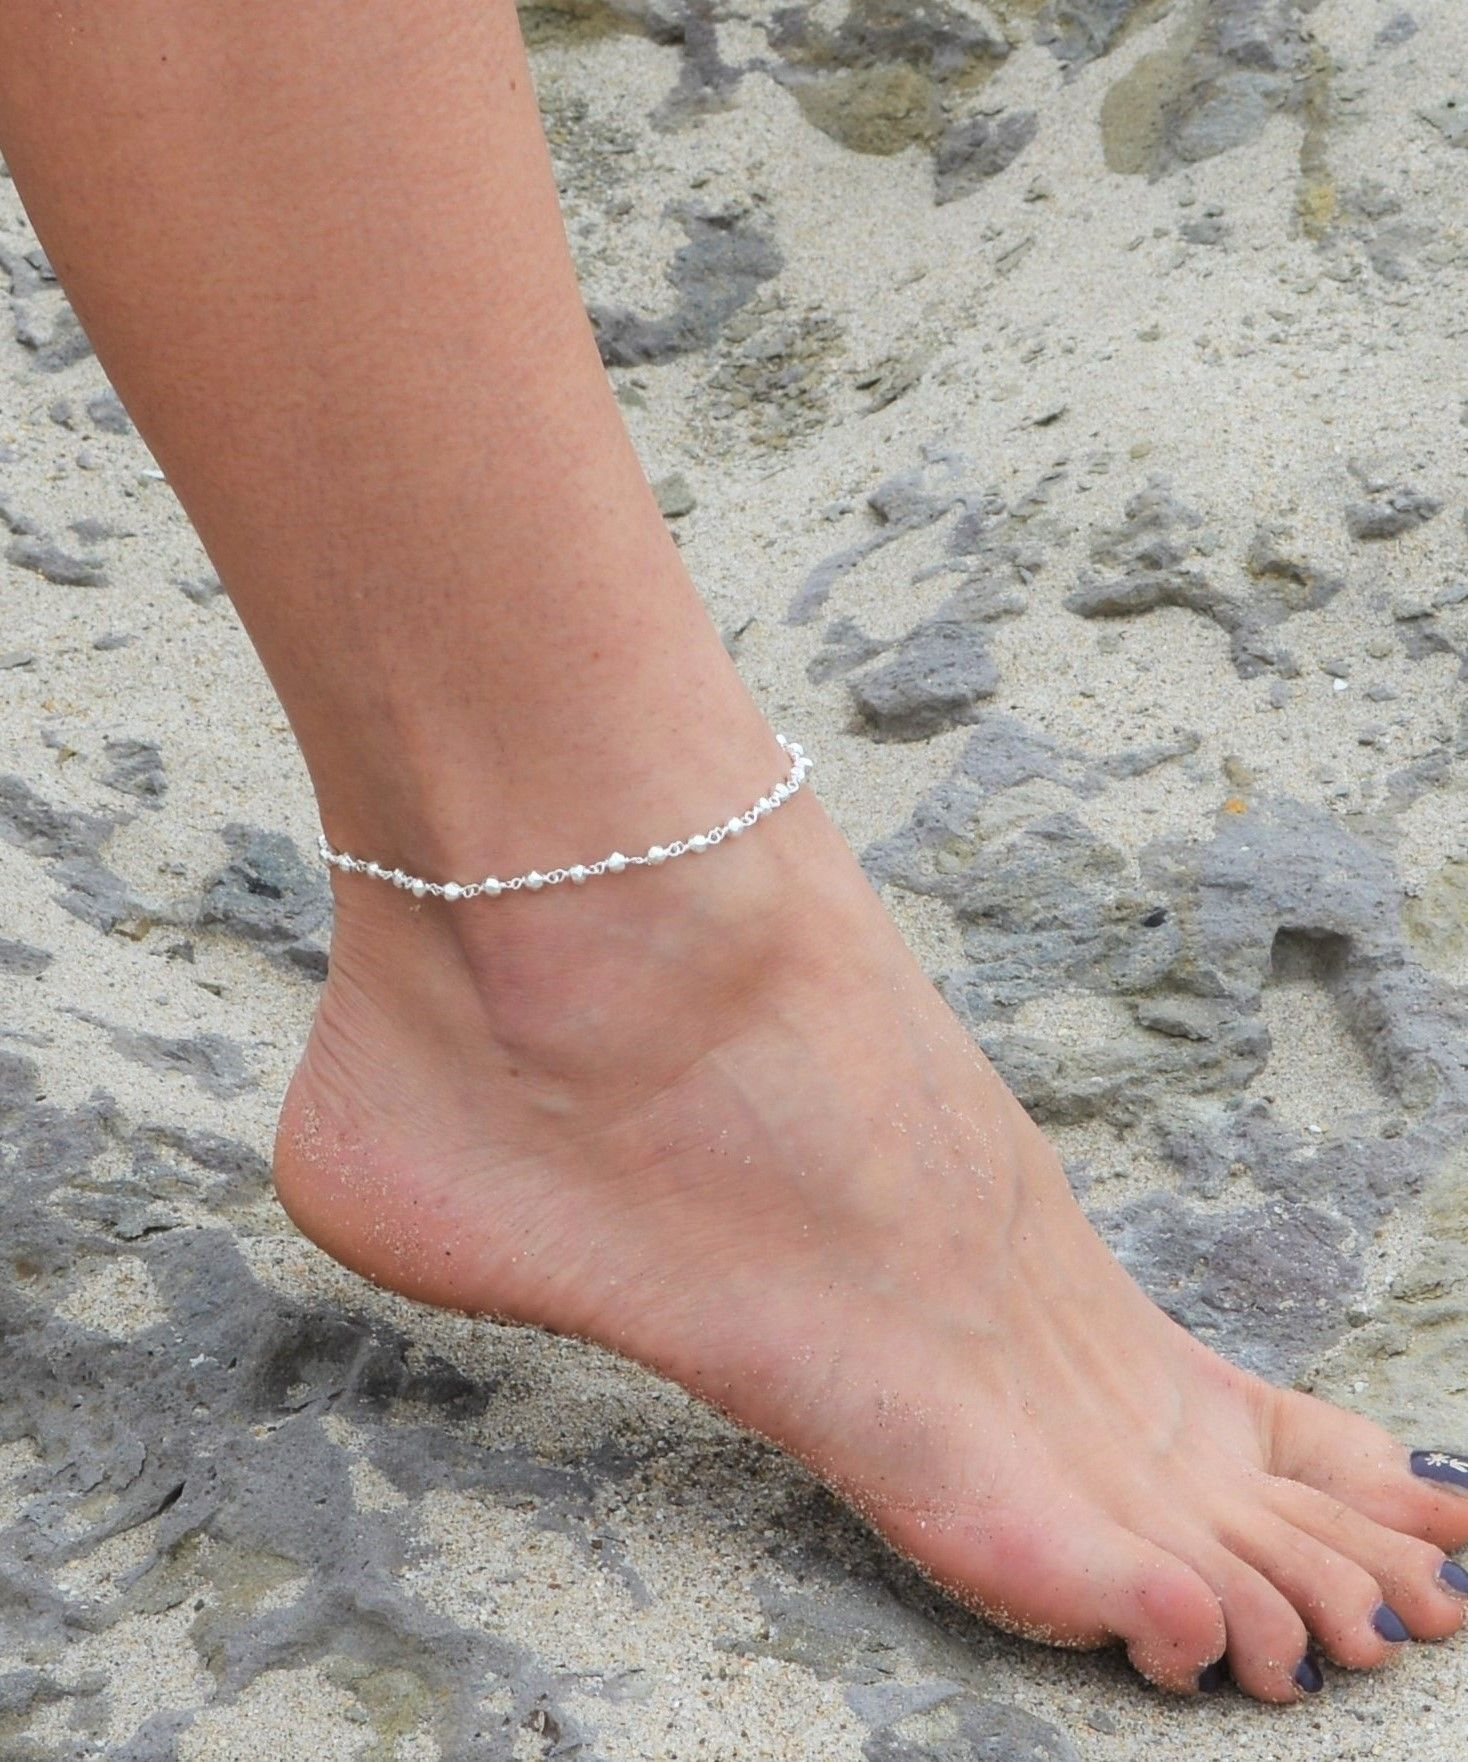 foot beach gift dainty anklet women jewelry pin for seed bracelet ideas her anklets bead beaded